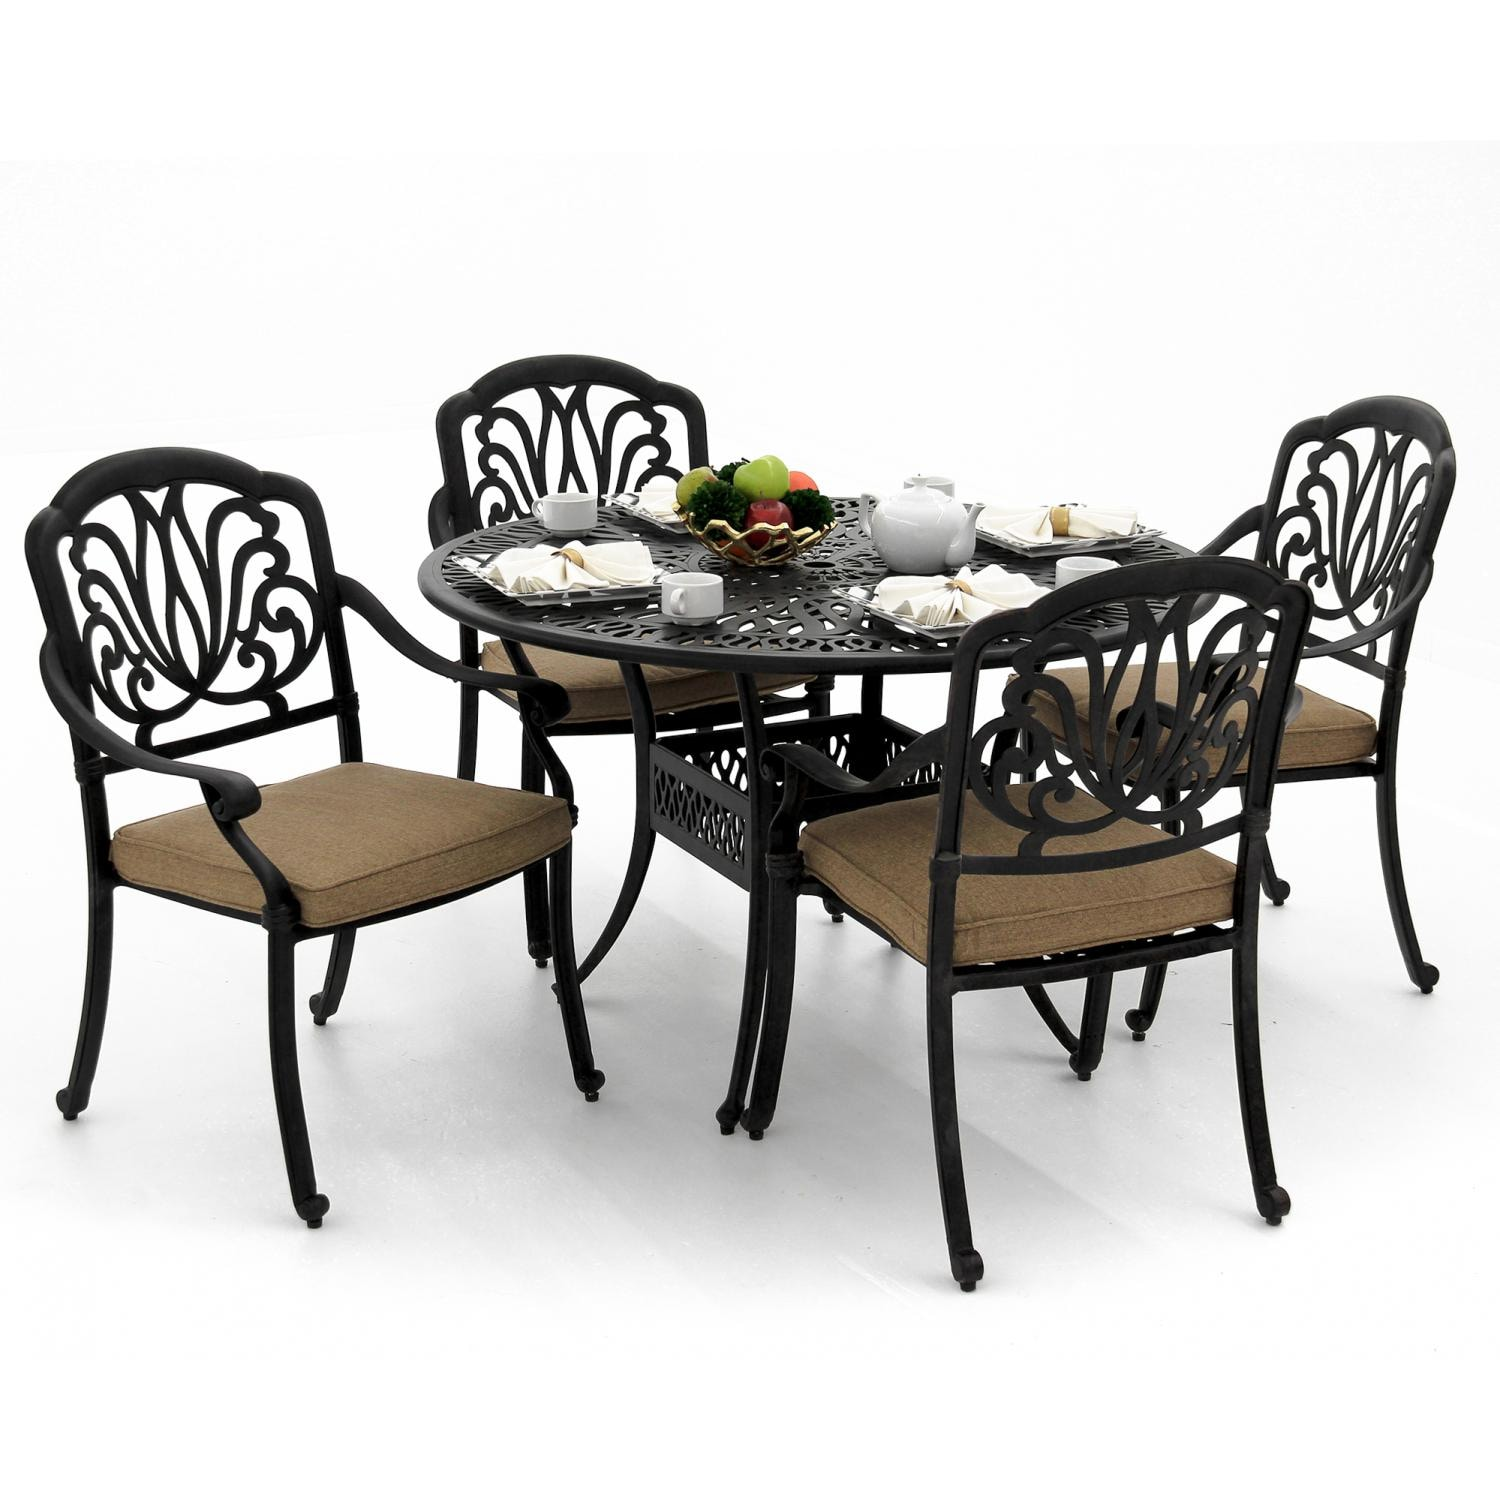 Rosedown 5 Piece Cast Aluminum Patio Dining Set With Round